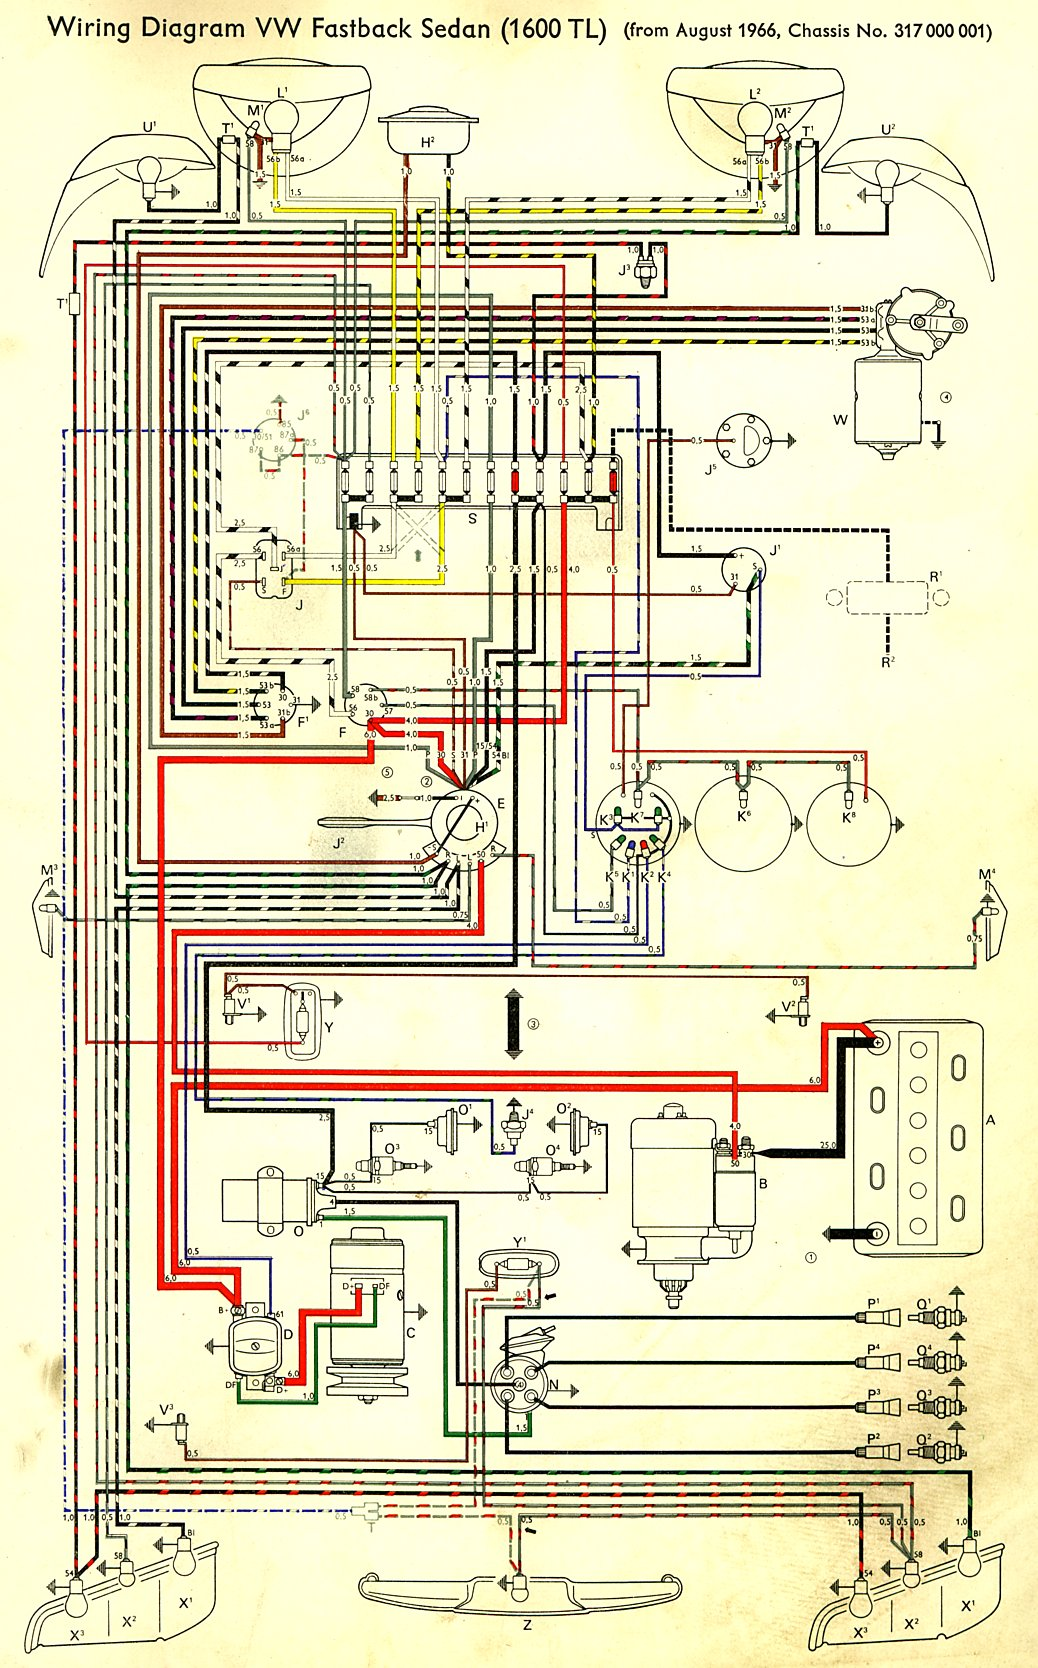 Type 3 Wiring Diagrams Wire Diagram 2 Lights